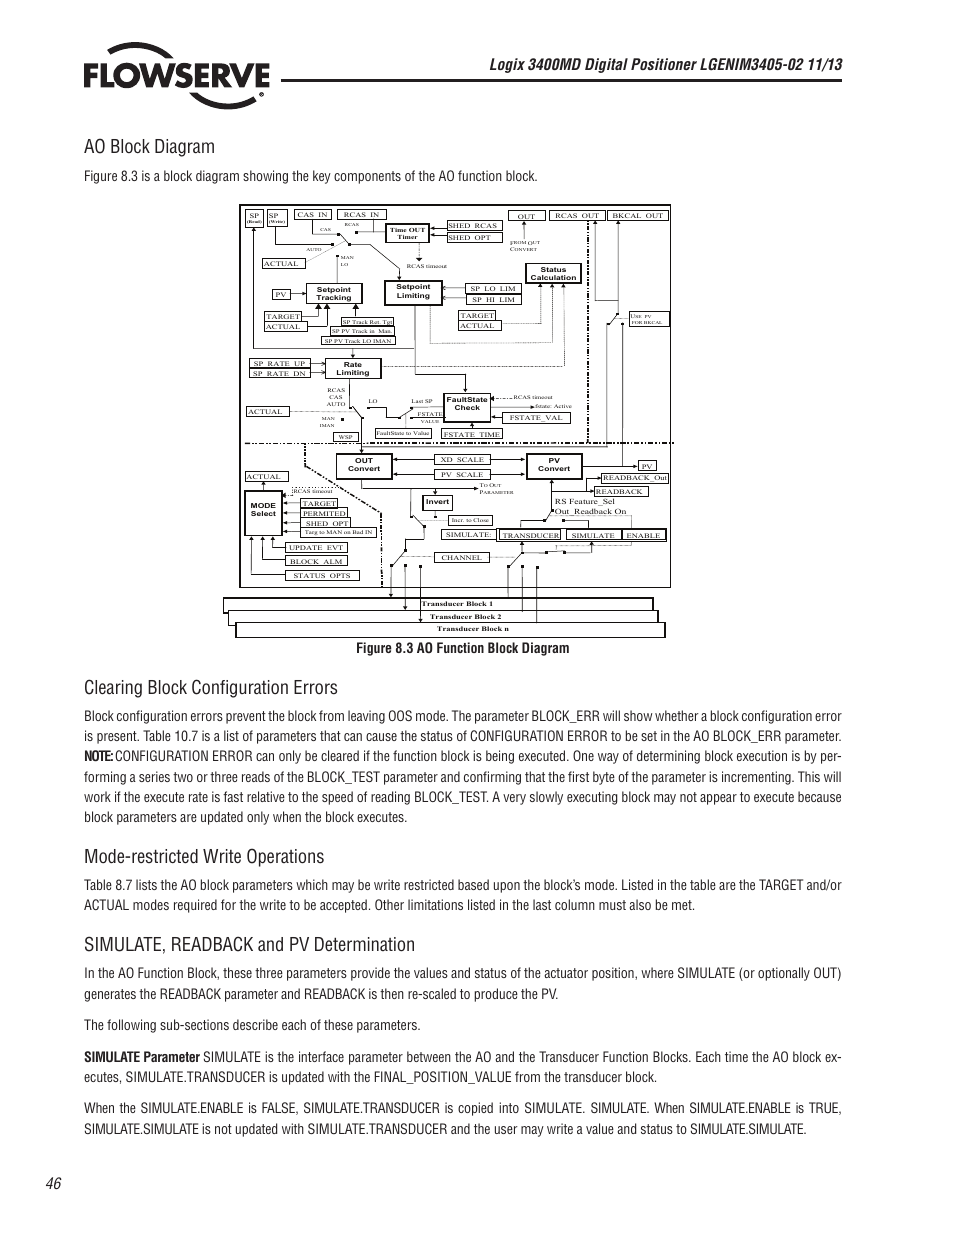 Ao Block Diagram Clearing Configuration Errors Mode Key Restricted Write Operations Flowserve 400md Logix User Manual Page 46 106